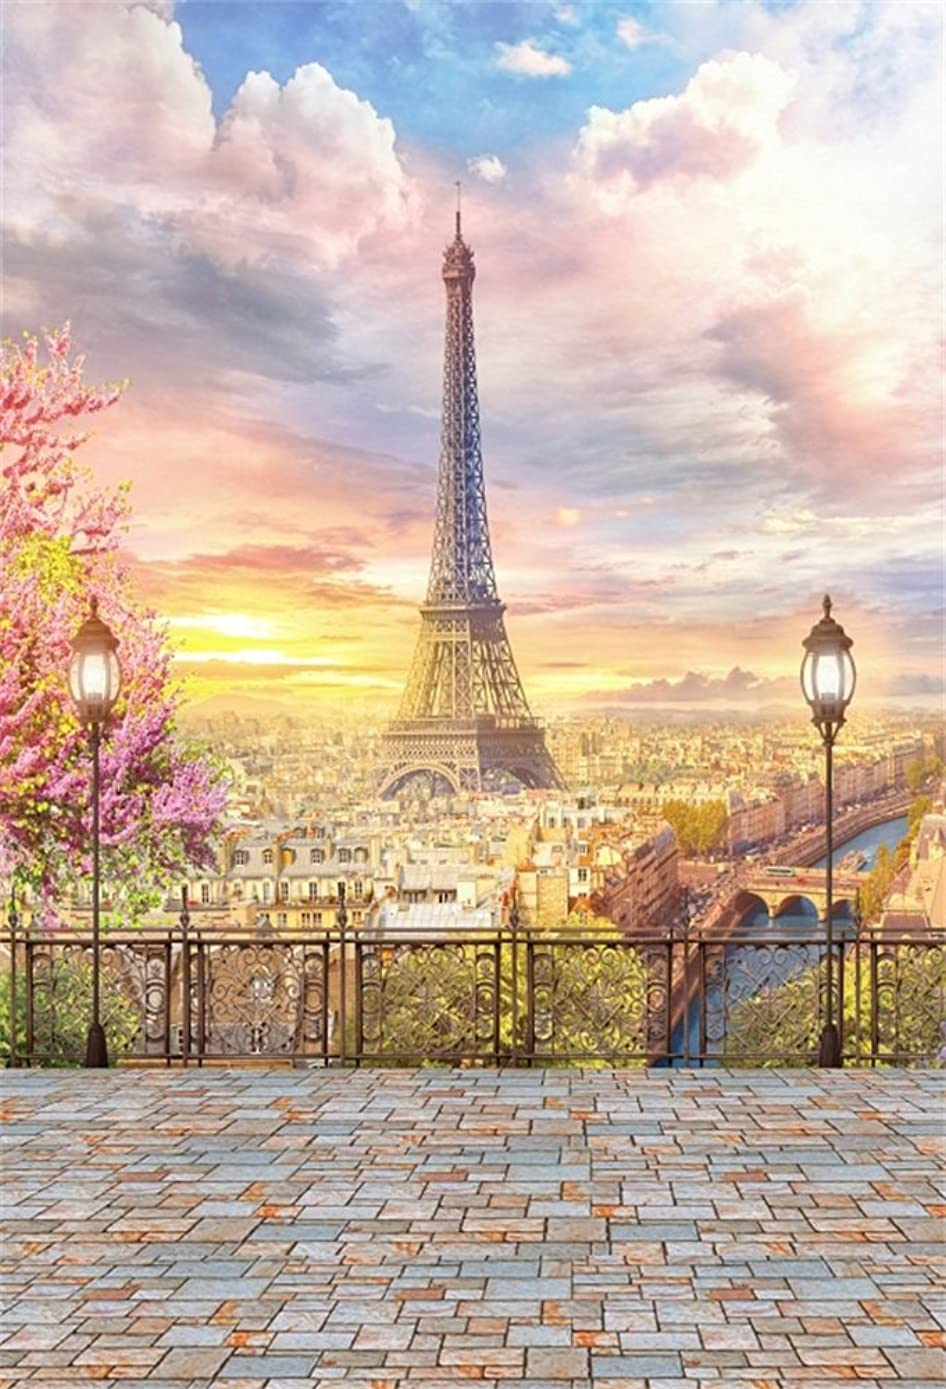 Laeacco 5x7ft Vinyl Photography Background Paris Balcony Landscape City Aerial View Eiffel Tower Street Lamp Cloudy Sky Blossoms Trees Pink Photo Background Wedding Girls Adult Background Studio Video